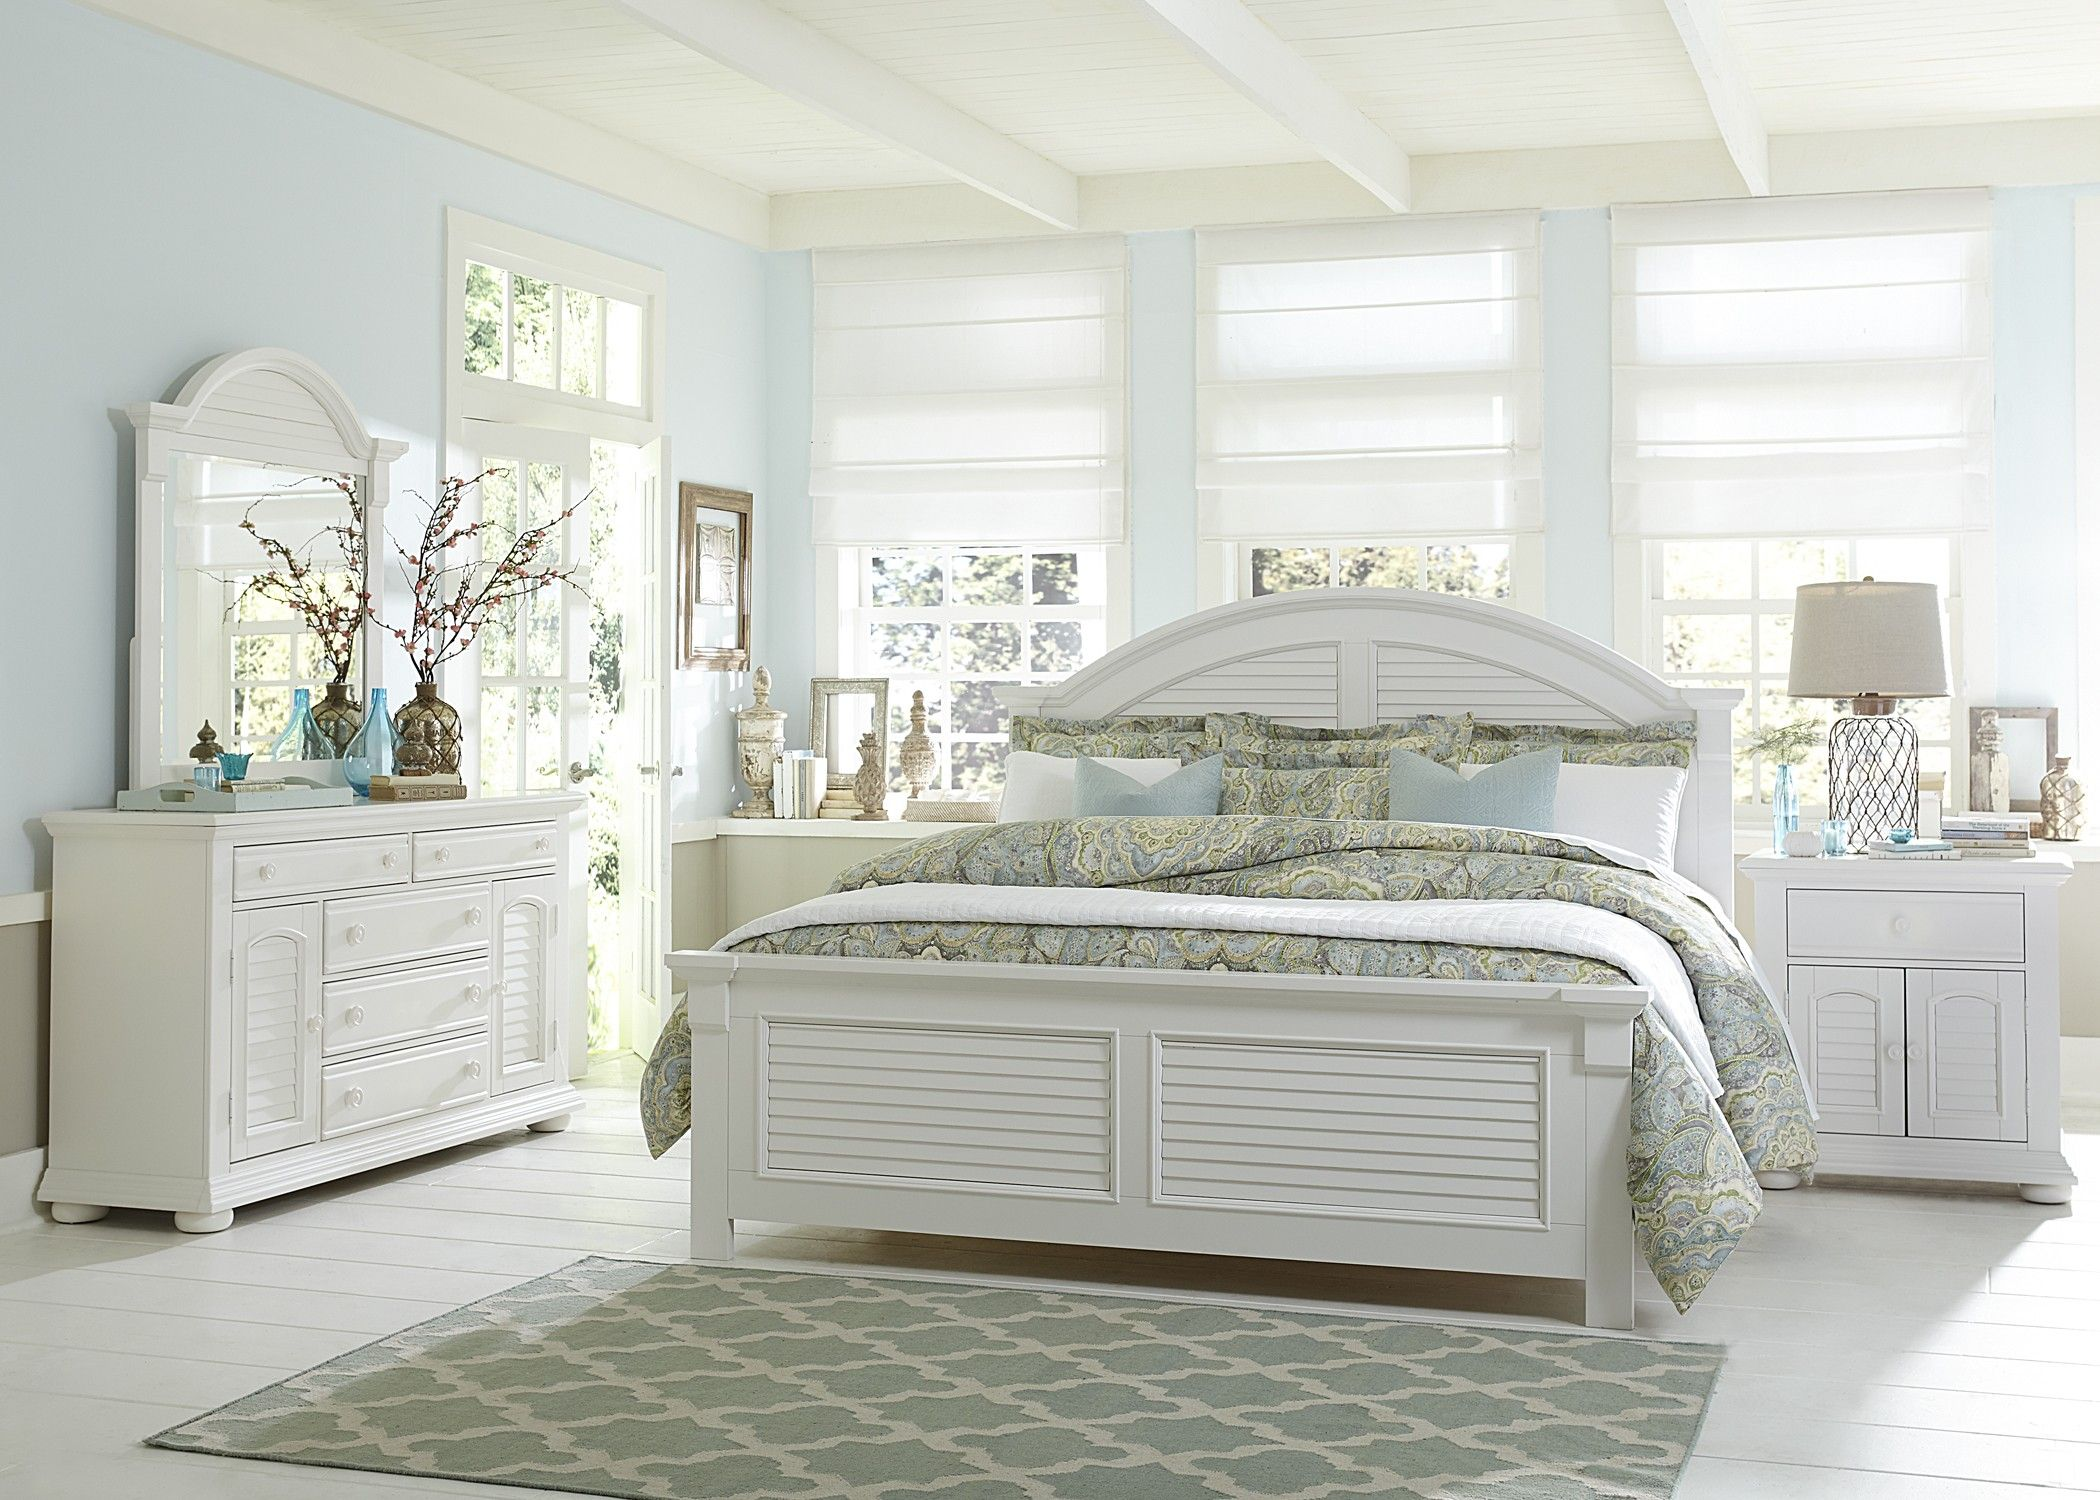 Summer House Oyster White 6PC King Bedroom Set. Summer House Oyster White 6PC King Bedroom Set   SC Home